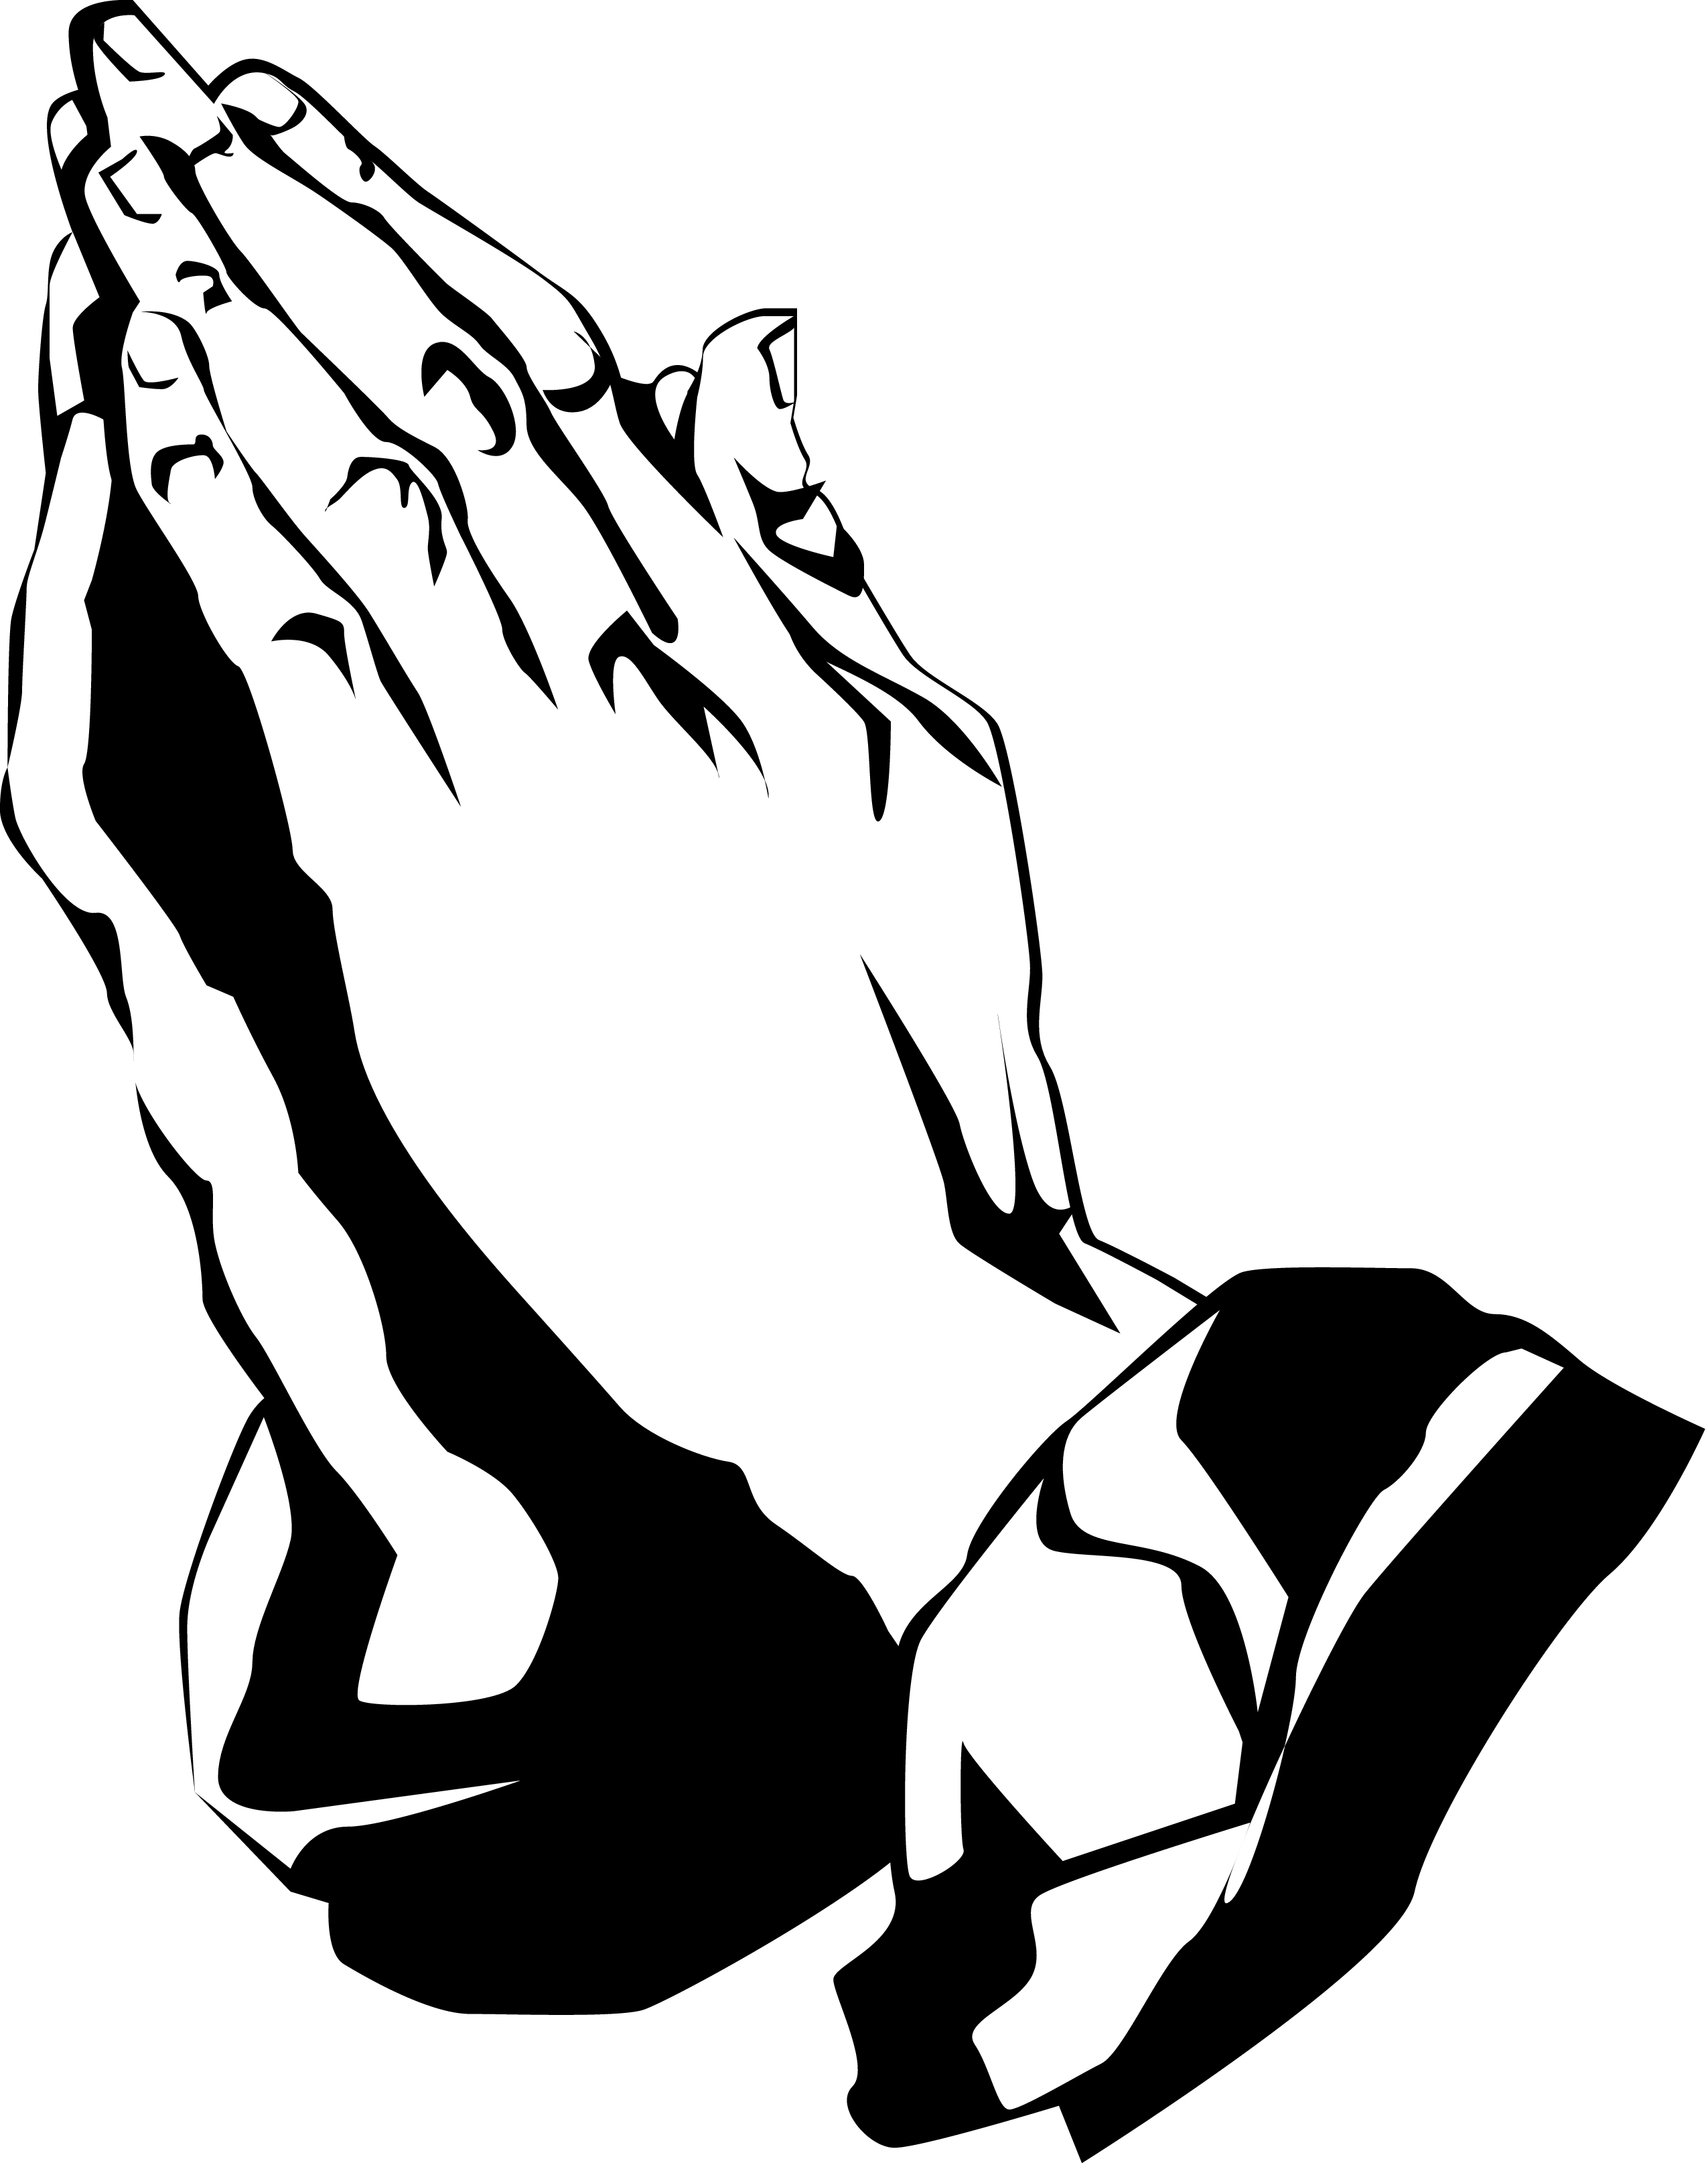 Free Begging Hands Cliparts, Download Free Clip Art, Free